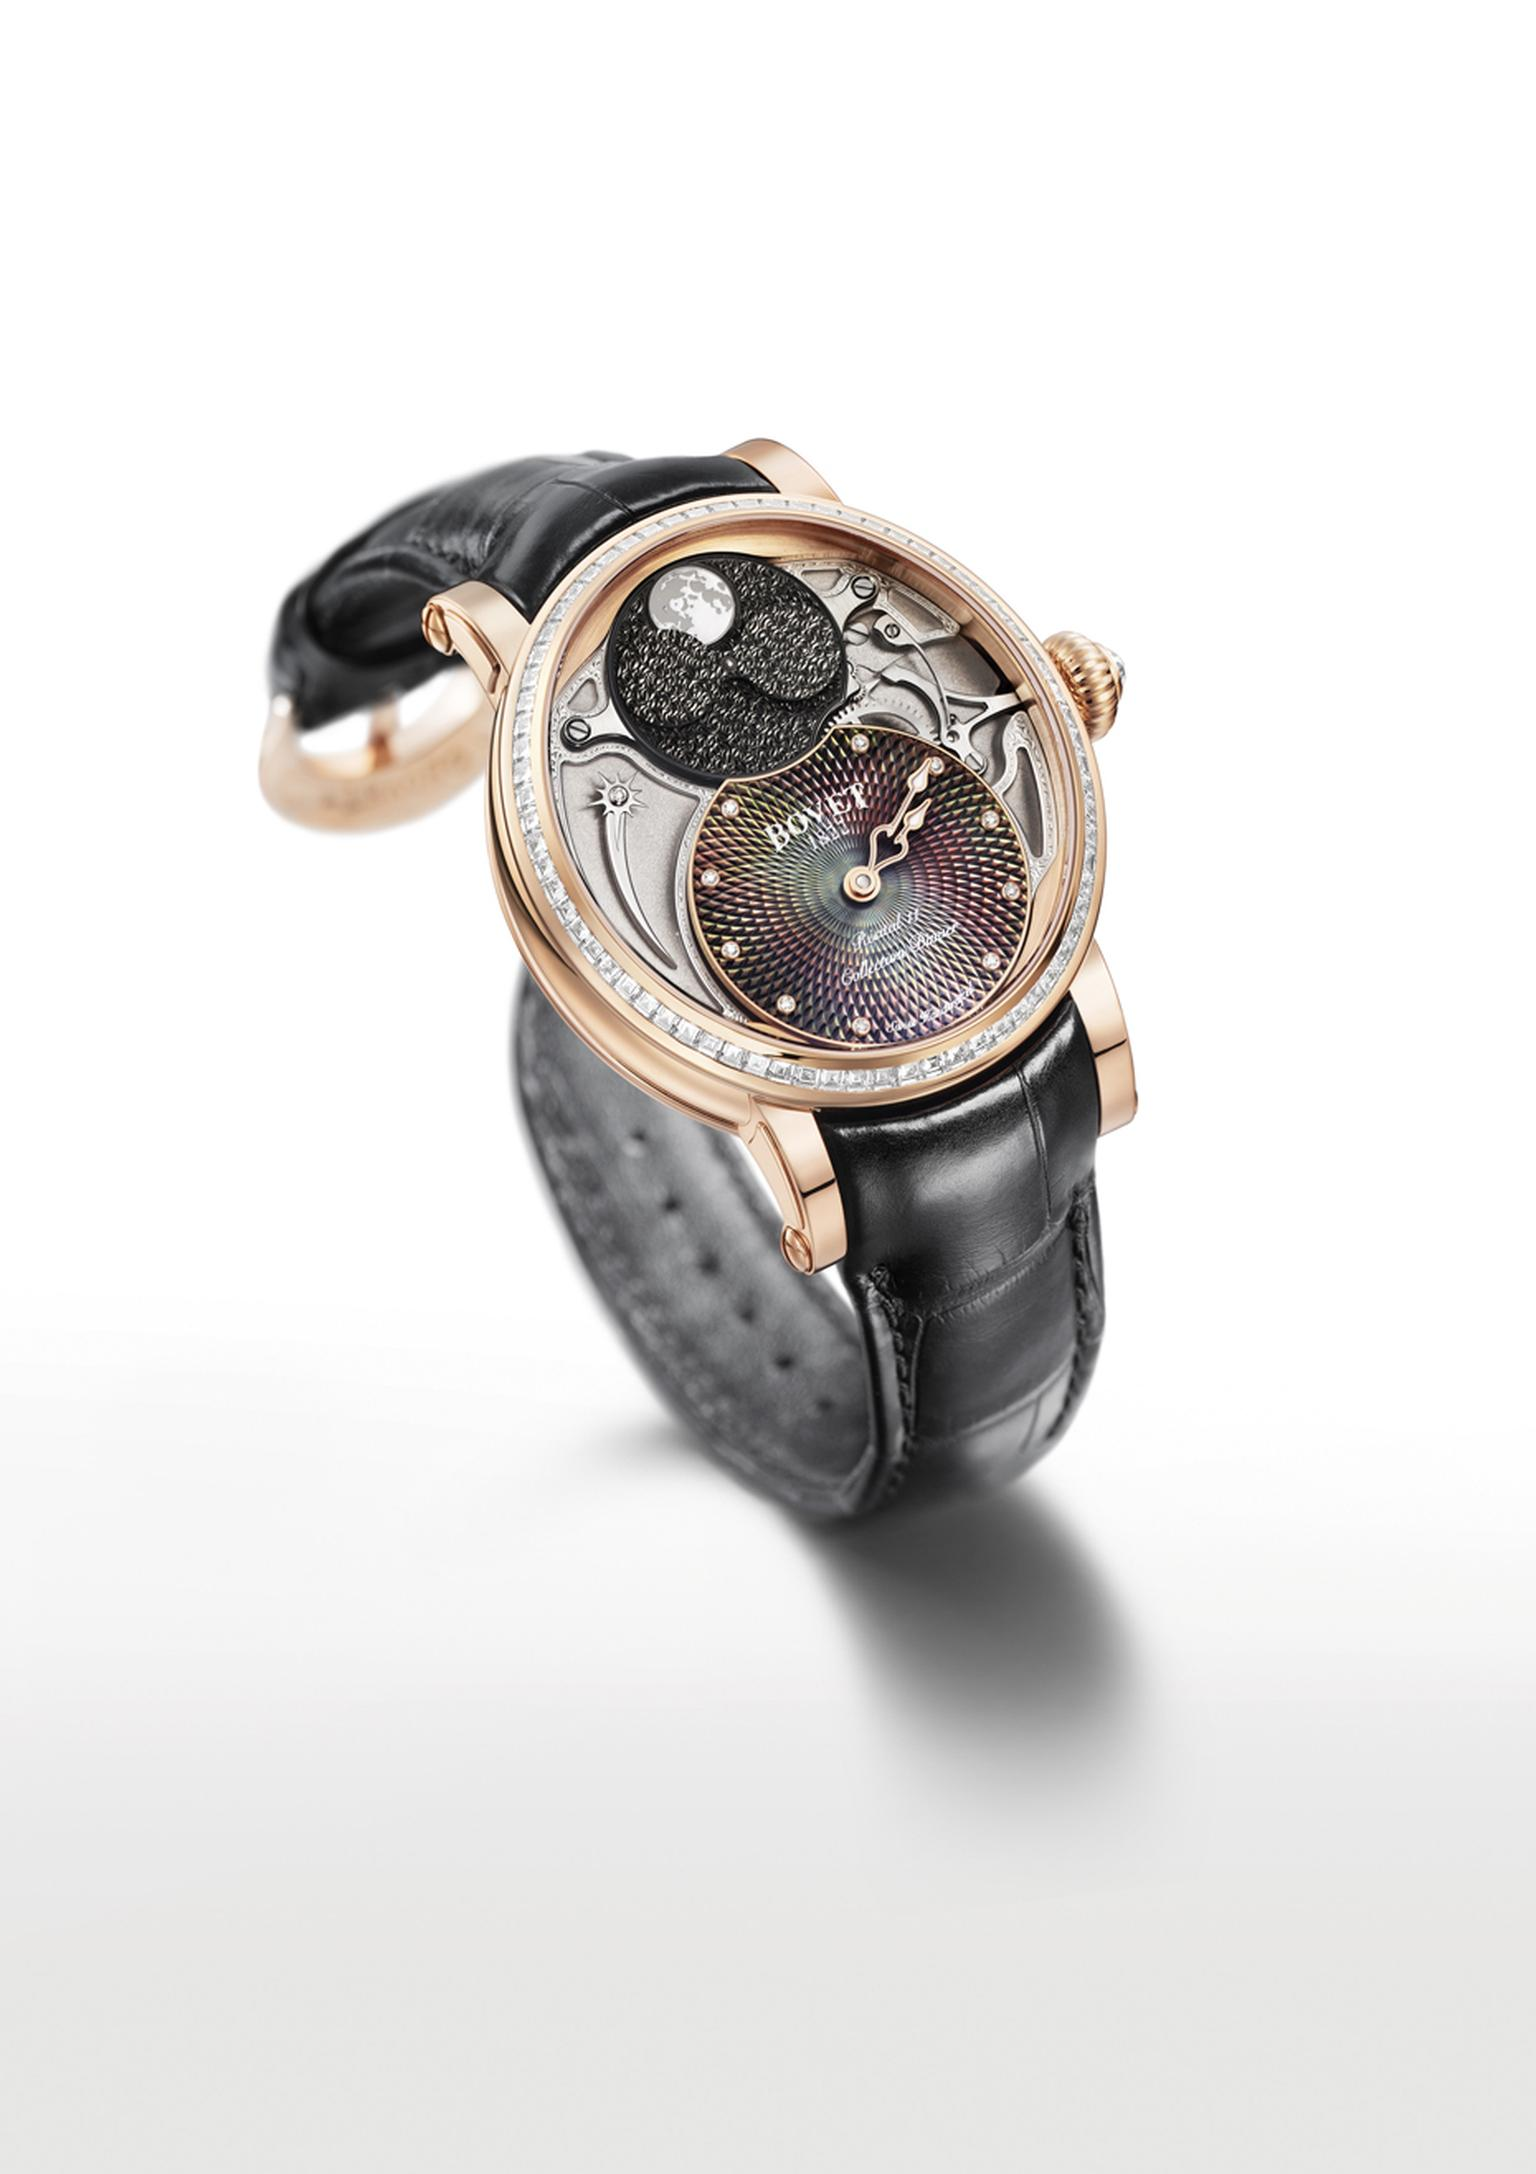 Bovet's Recital 11 Miss Alexandra watch features unusual-shaped hour and minute hands that form a heart once an hour when they meet.